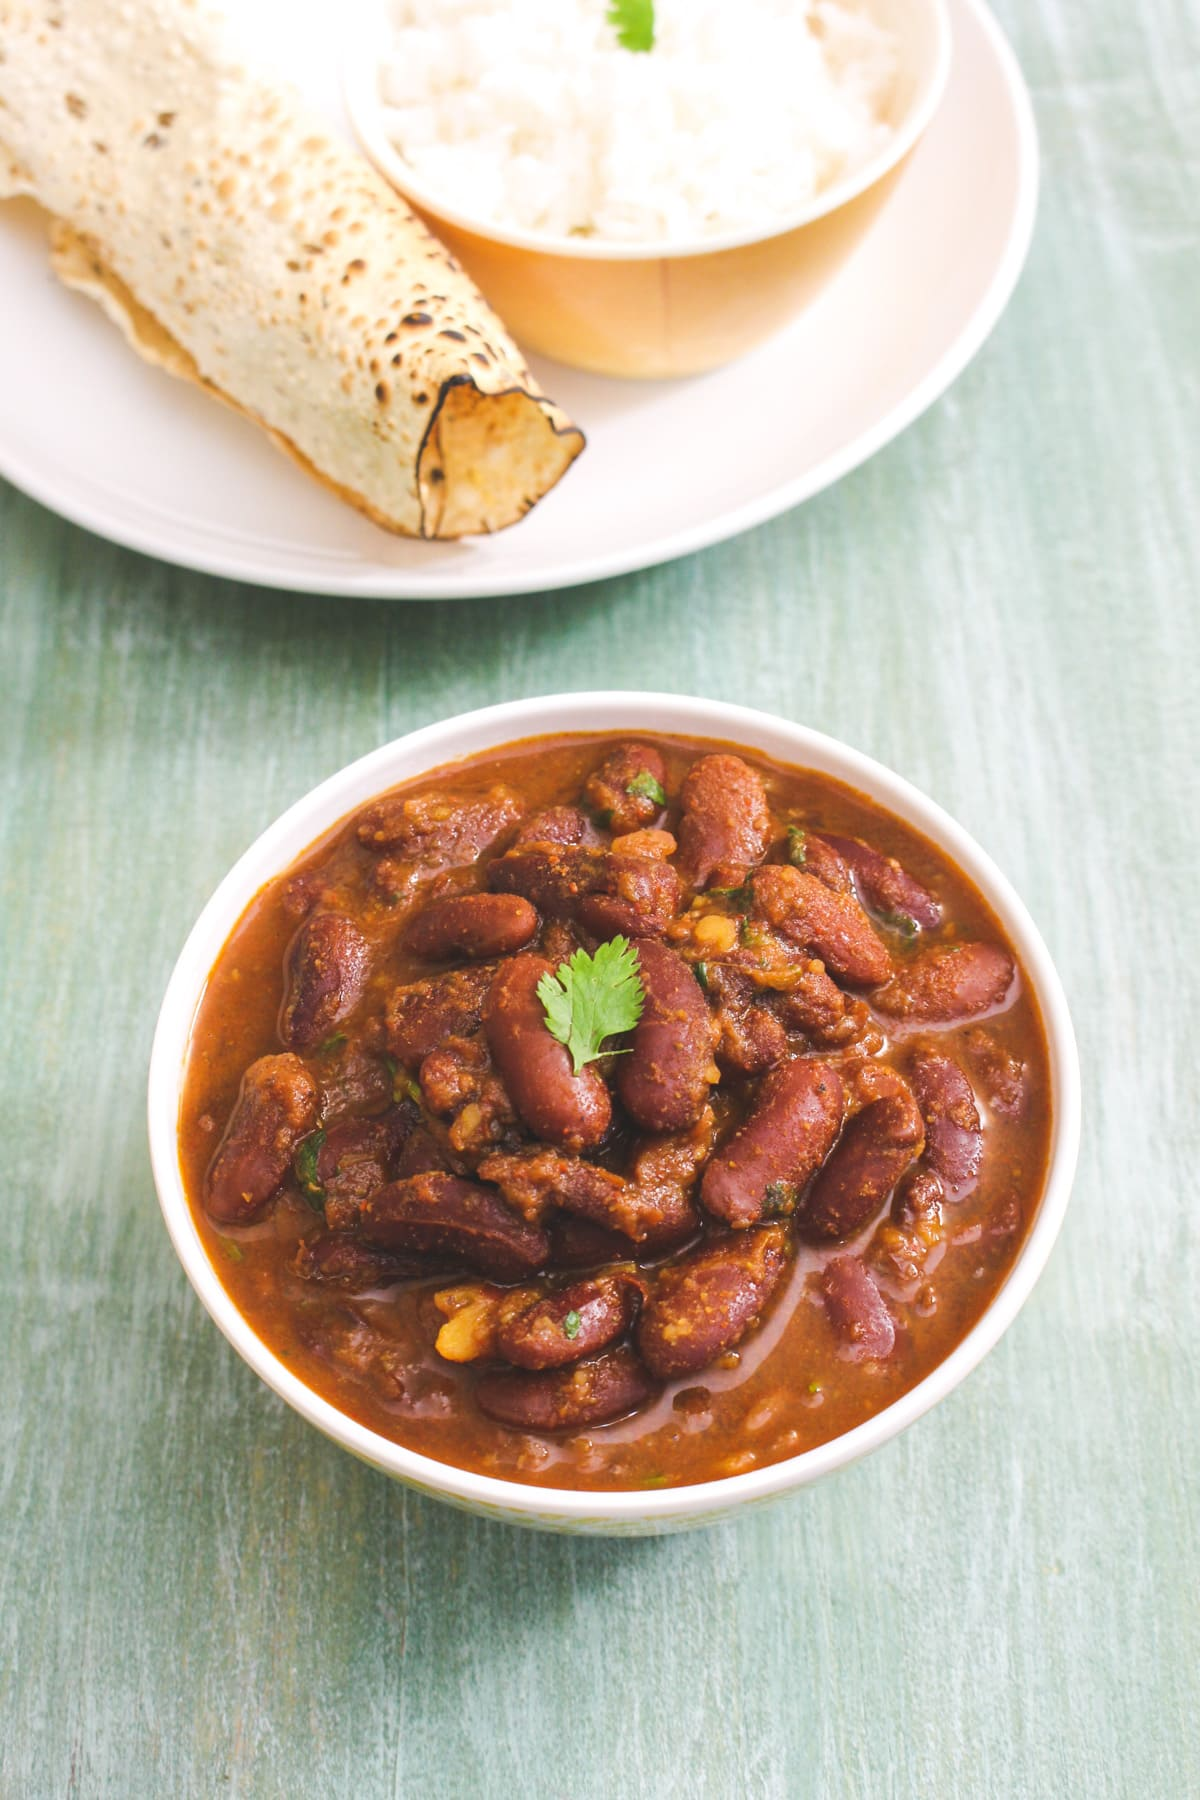 Top view of rajma in a bowl served with papad and rice.